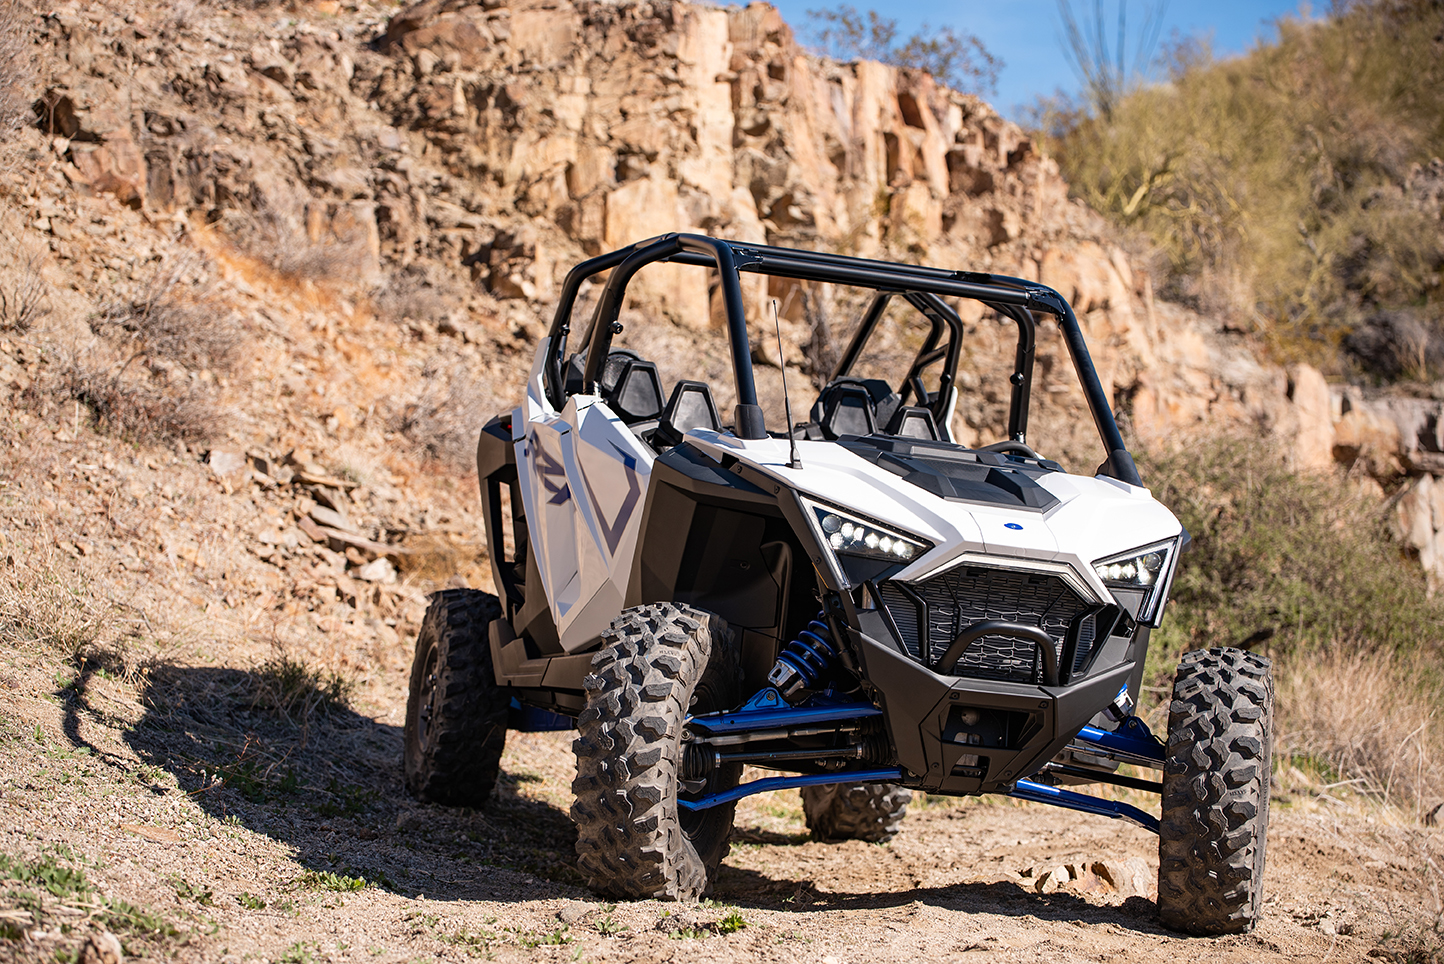 2020 Polaris RZR PRO XP 4 Review